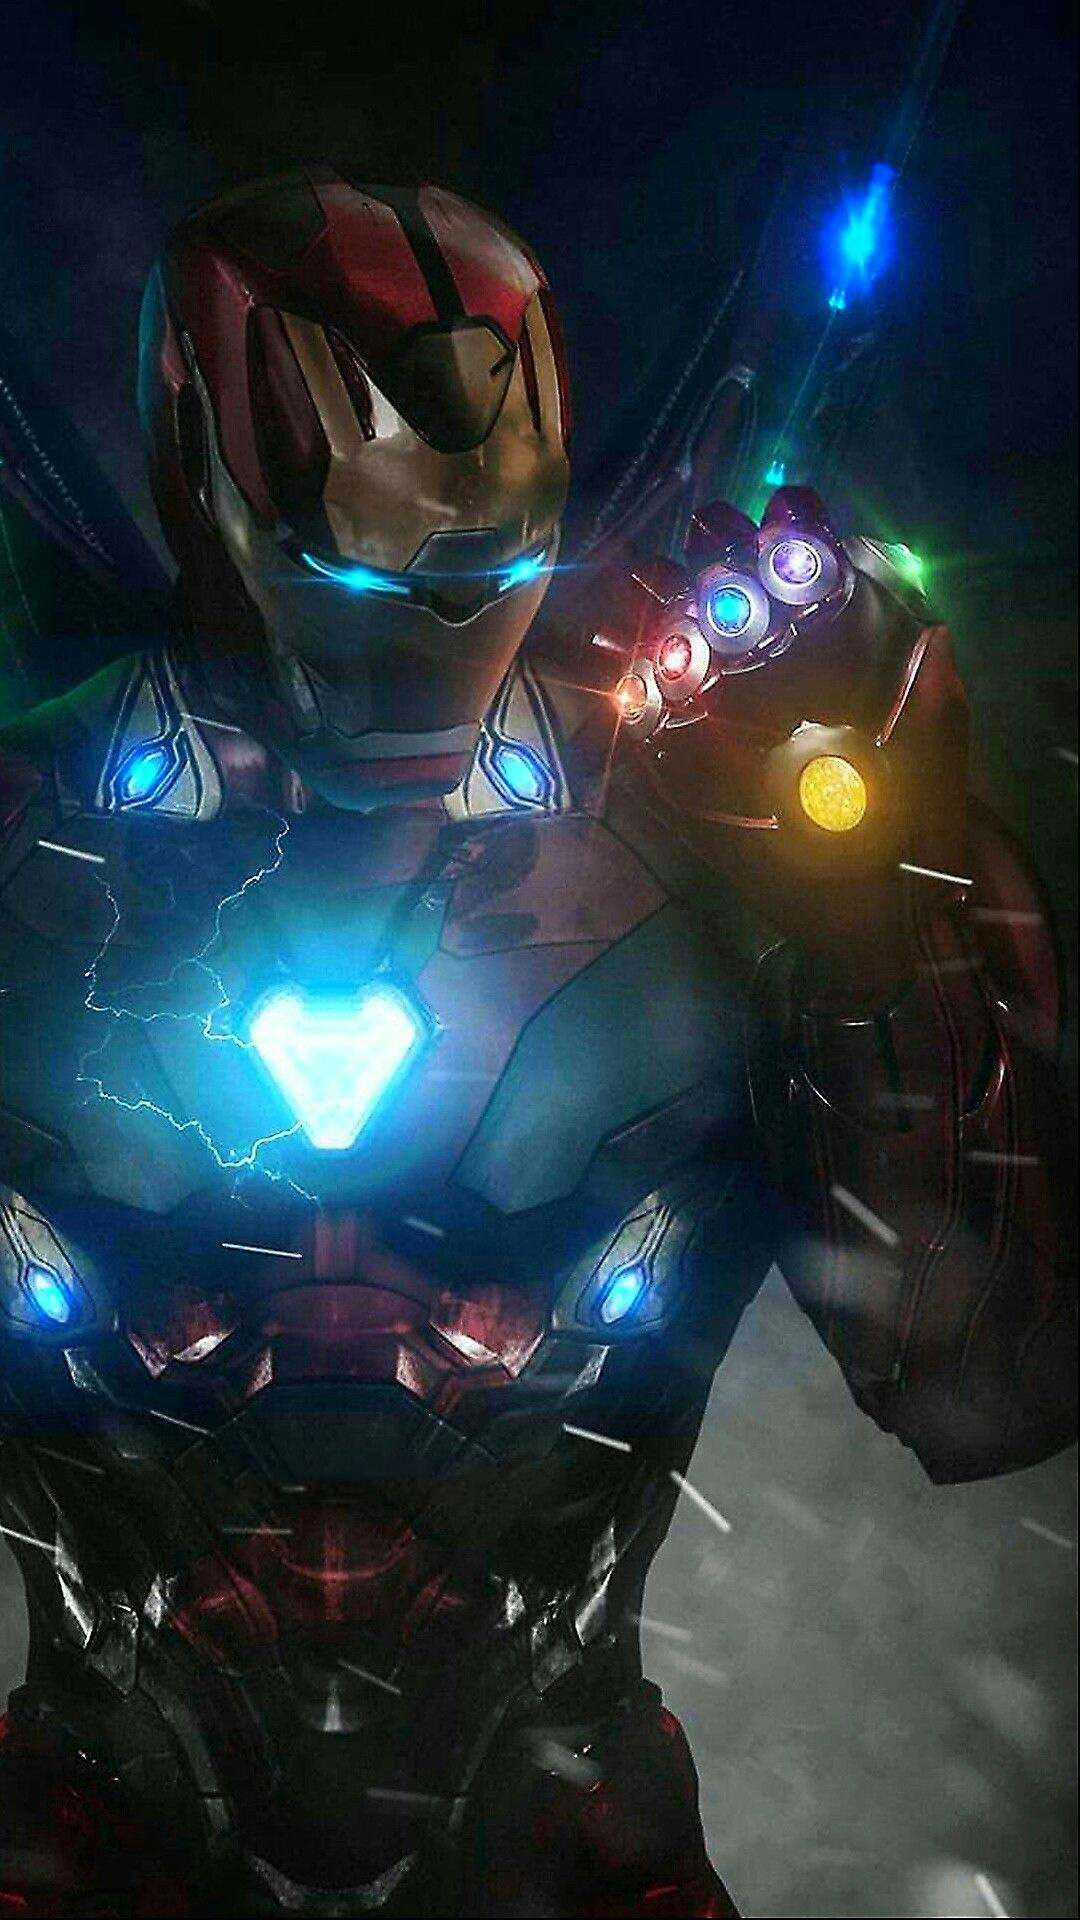 135 Iron Man Aesthetic Android Iphone Desktop Hd Backgrounds Wallpapers 1080p 4k 1080x1920 2020